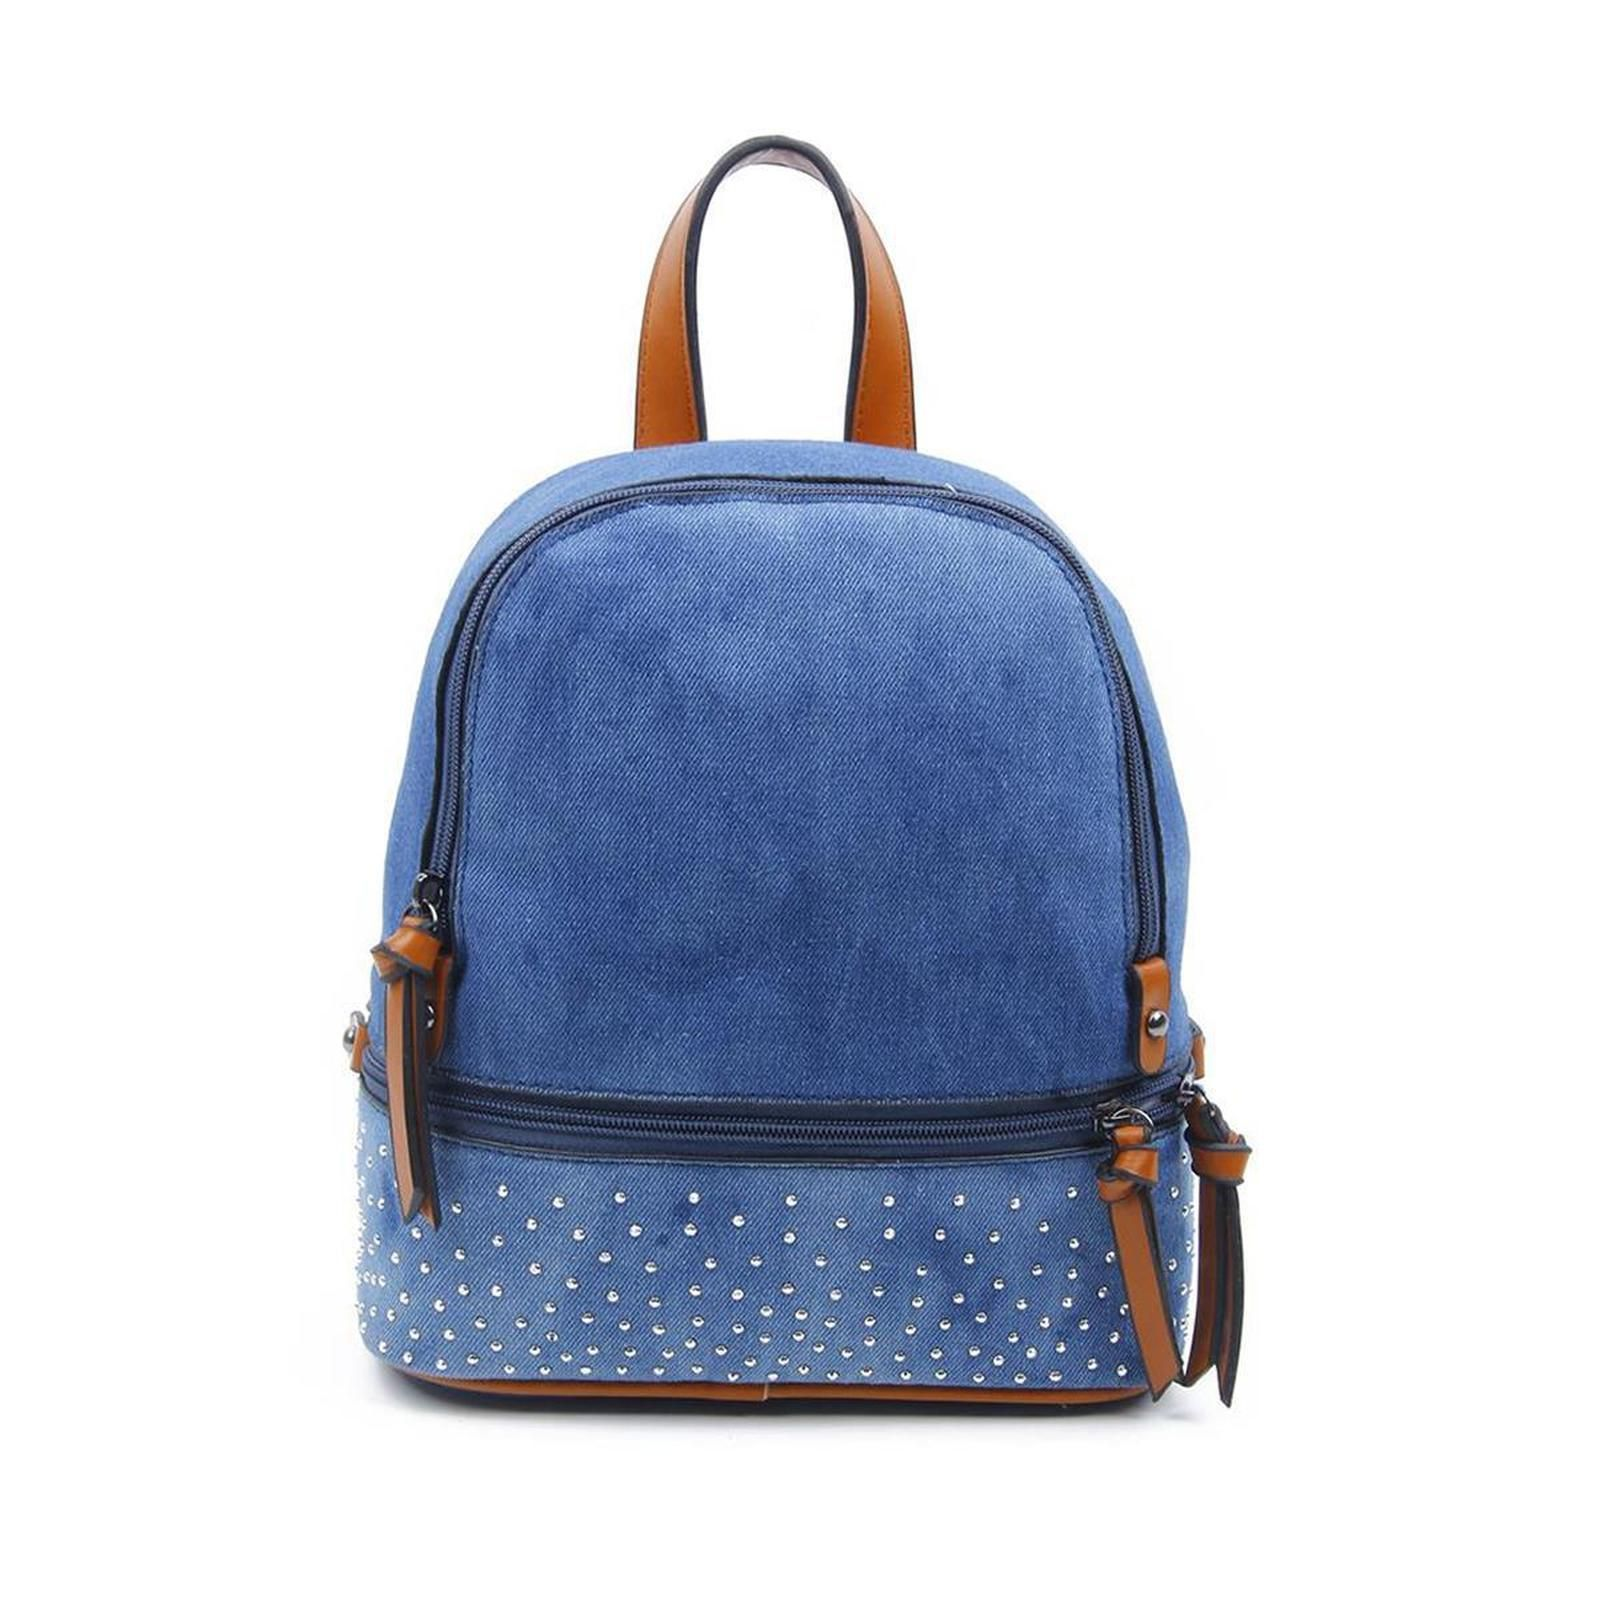 Photo of Obc women girls jeans rucksack backpack